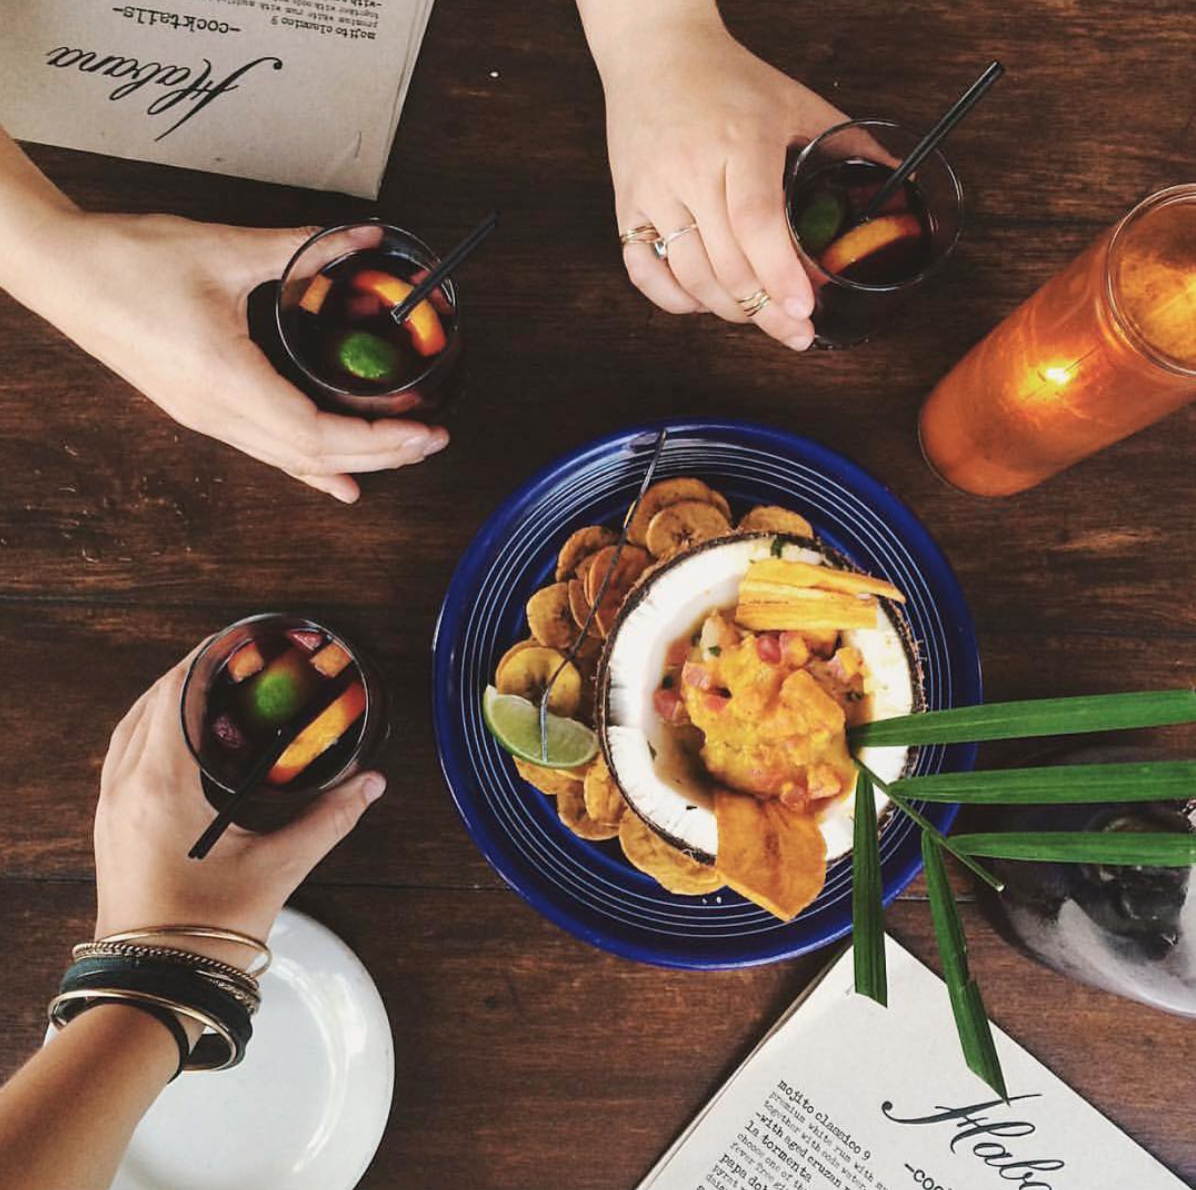 Habana's house sangria is the perfect pairing for your next late night visit | Photo courtesy of Taylor Loren via Instagram